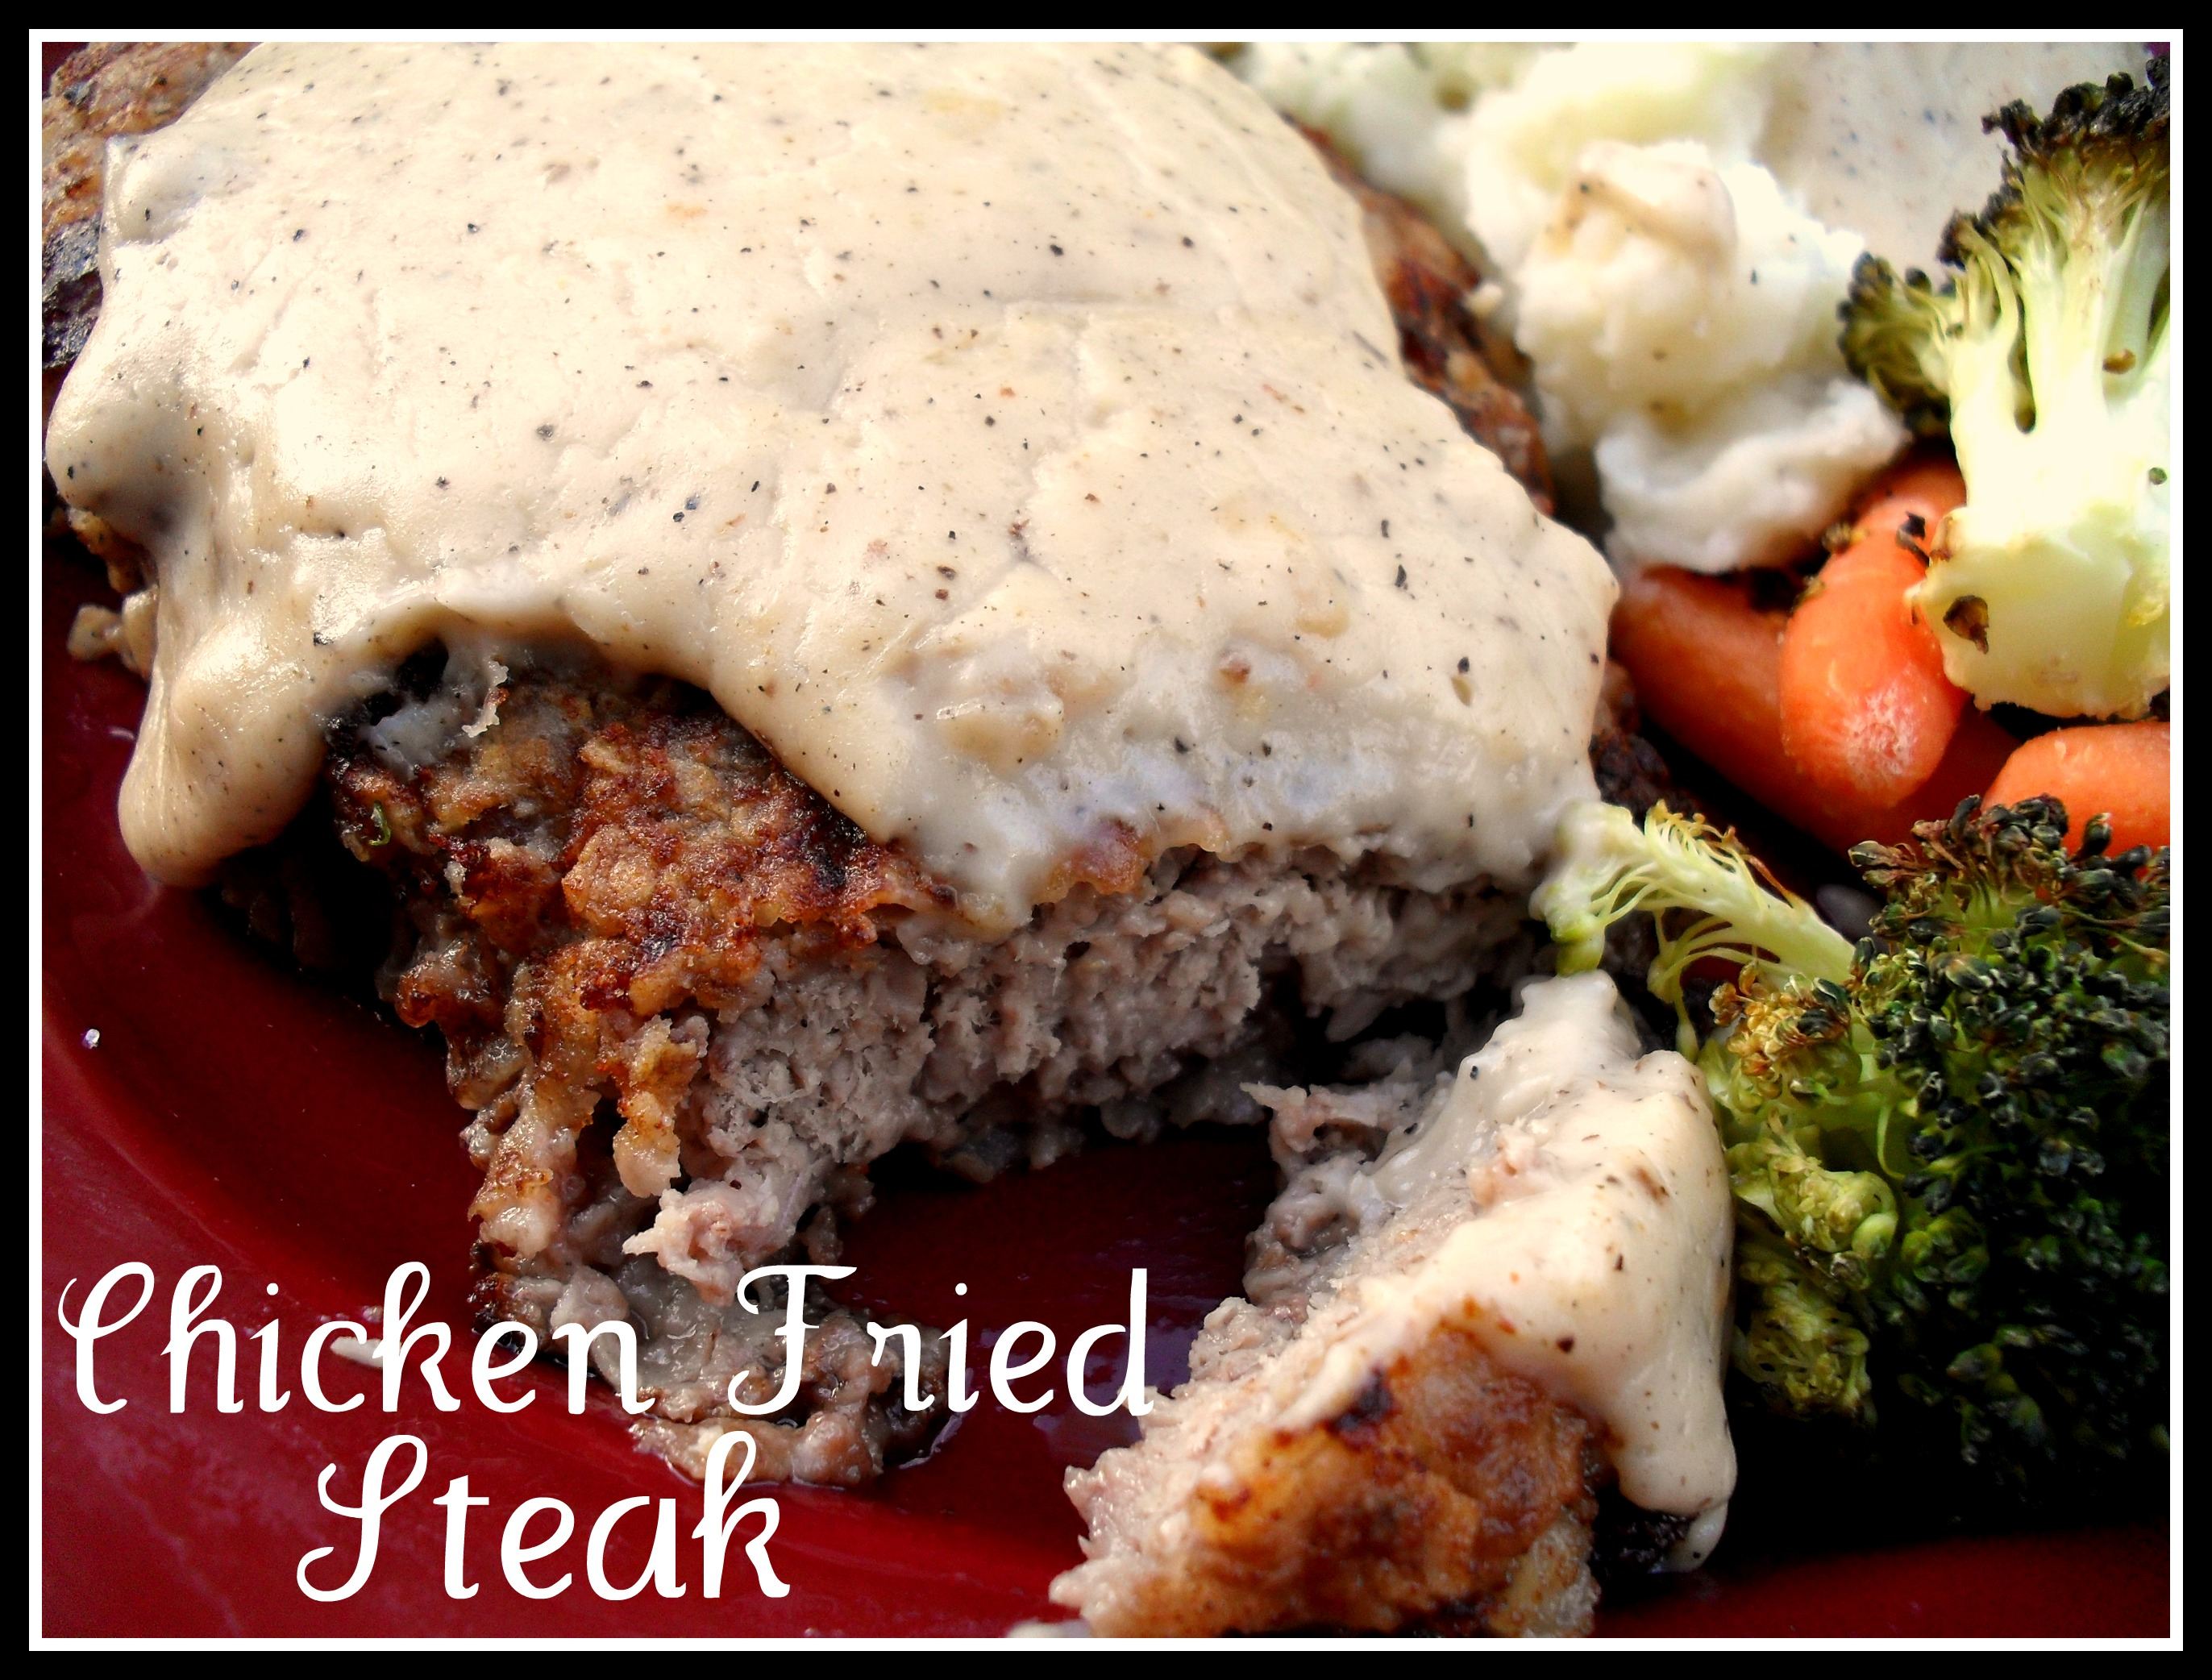 Chicken-Fried Steak with Country Gravy | Veronica's Cornucopia